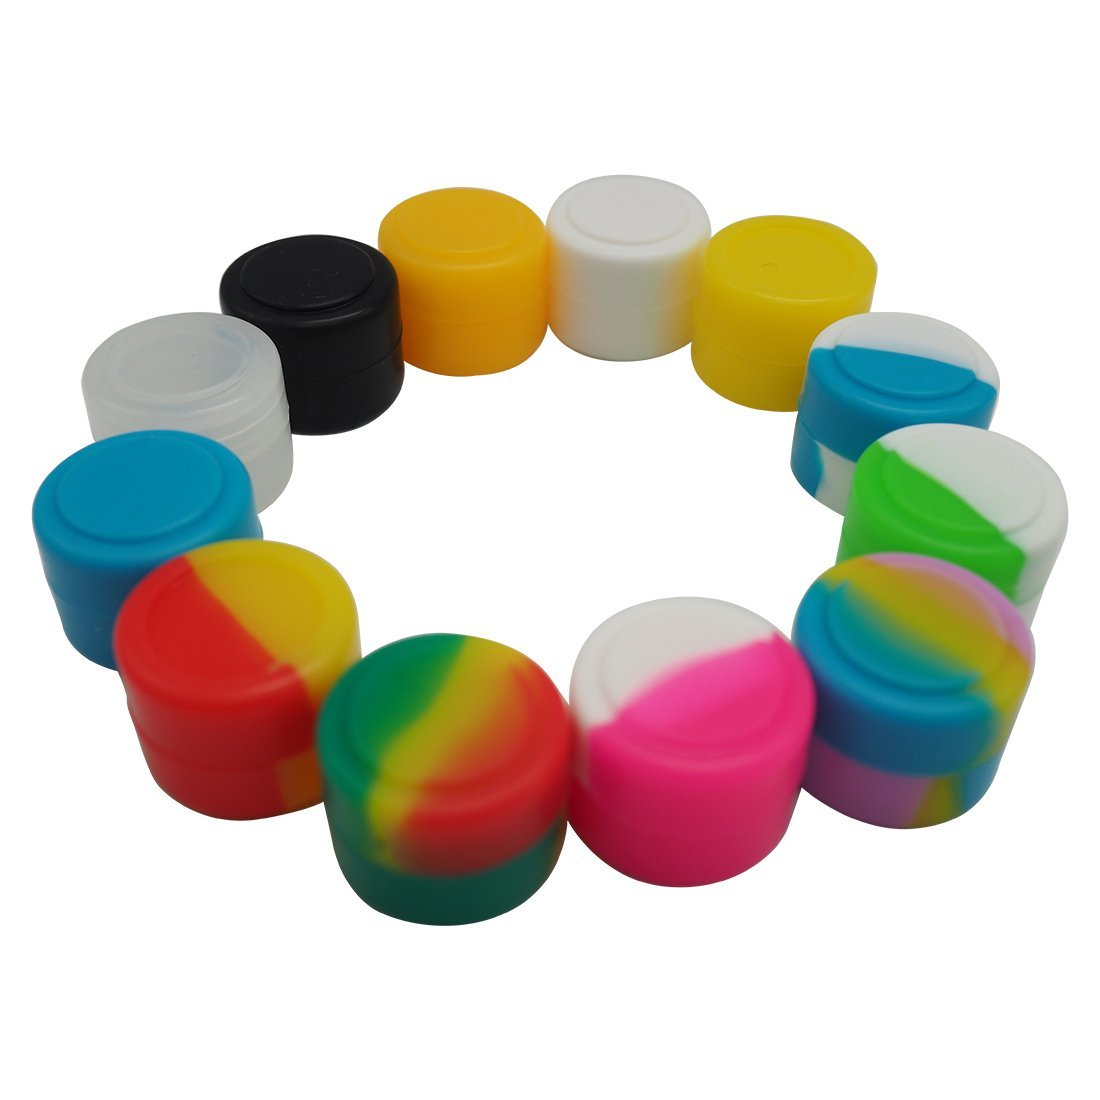 Gentcy Silicone 2ml 100pcs Silicon ContainersJar Seals Oil Wax Concentrate 13Color